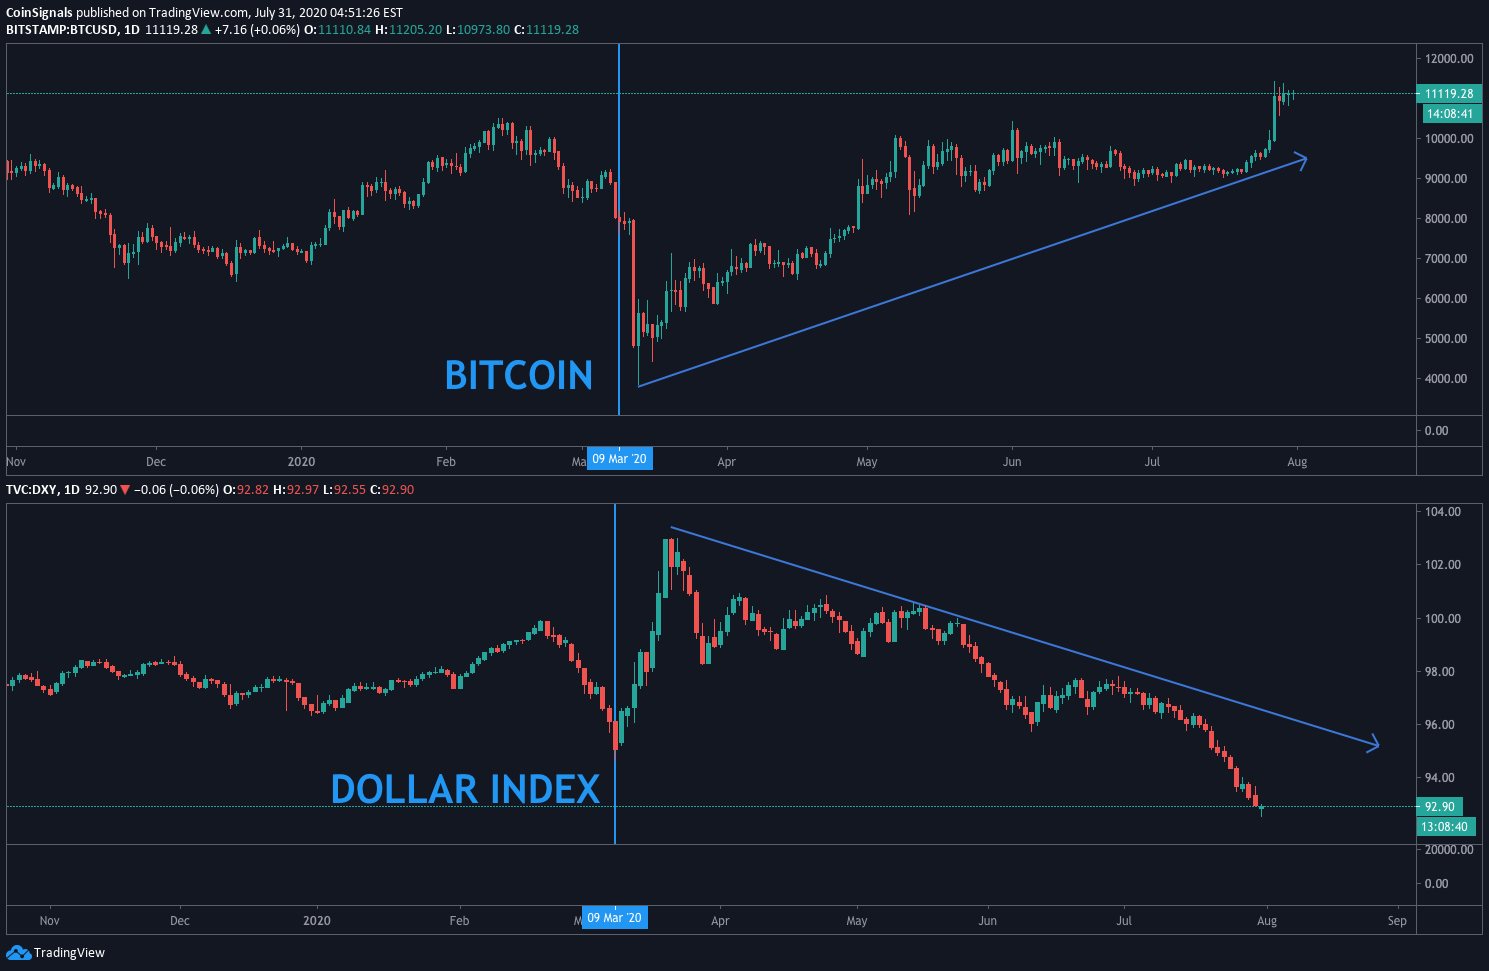 Dollar Index Dxy Vs Bitcoin Btc For Bitstamp Btcusd By Coinsignals Tradingview